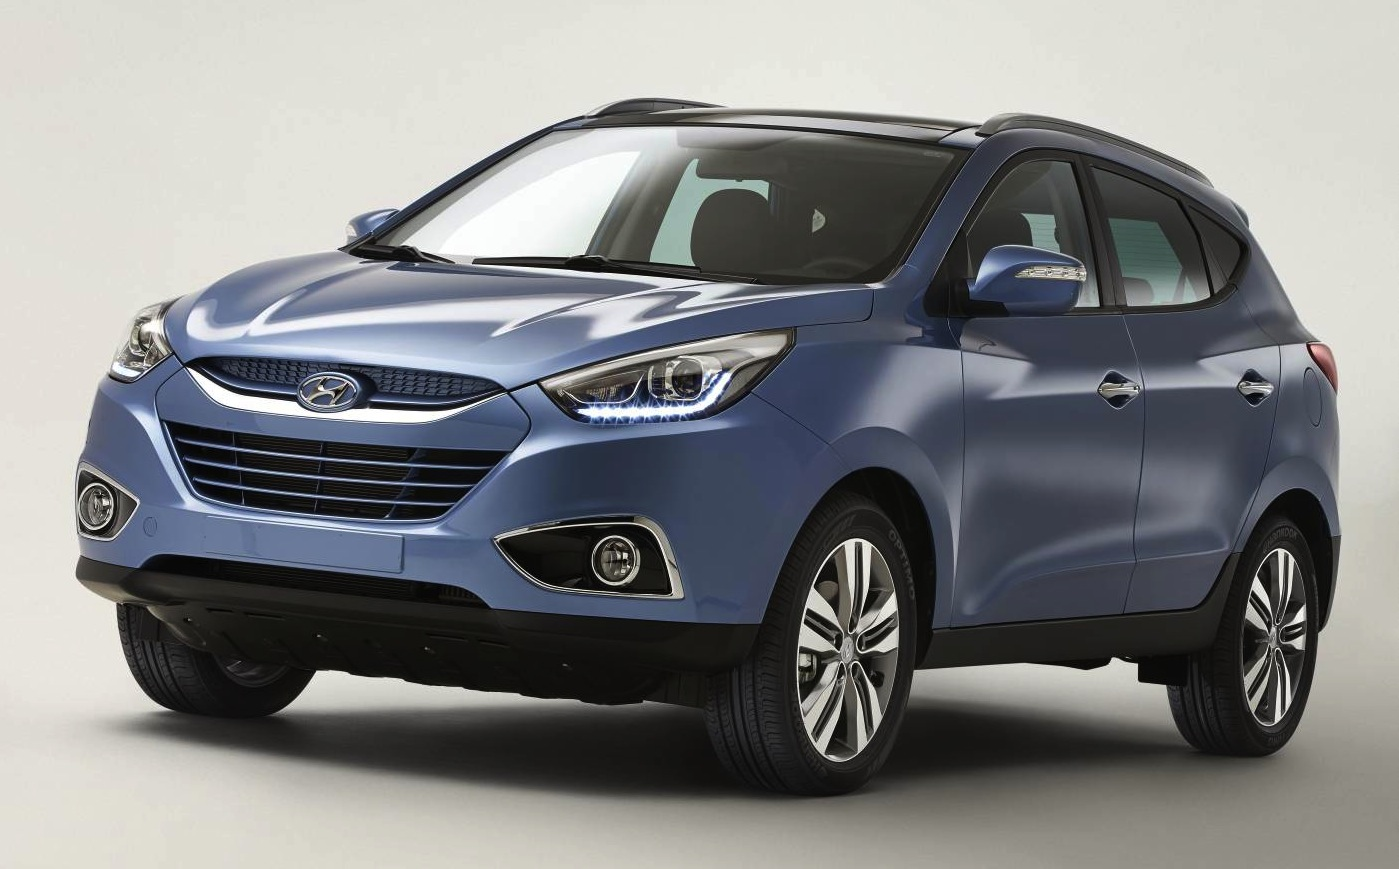 hyundai ix35 facelift new engine for updated suv photos. Black Bedroom Furniture Sets. Home Design Ideas